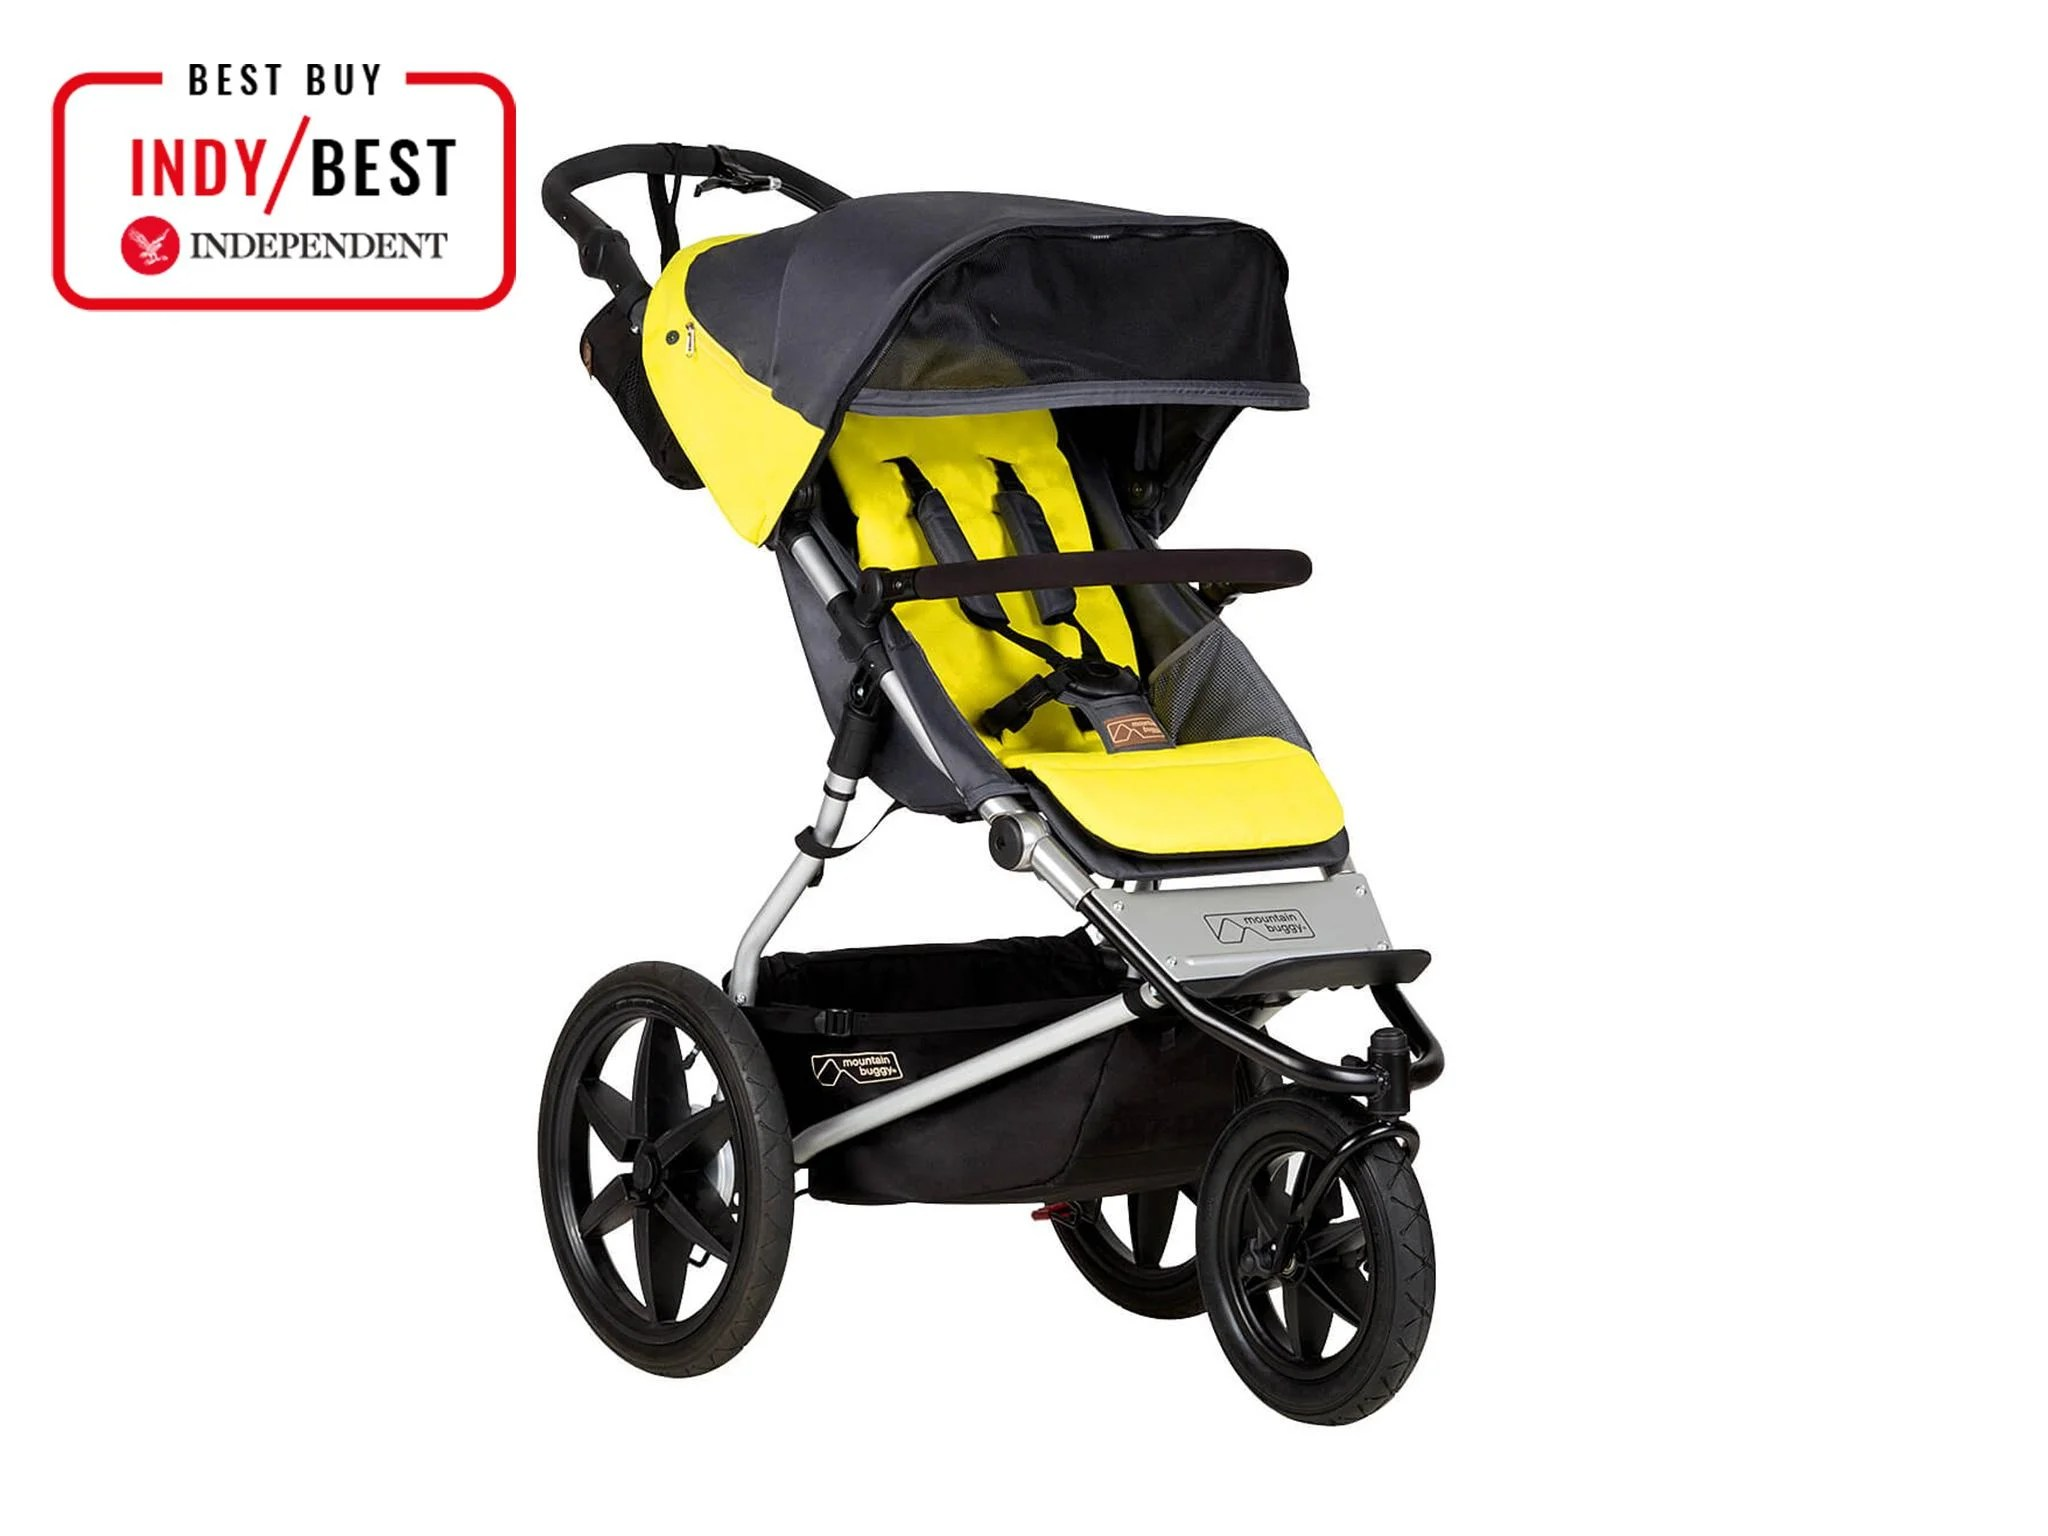 3 Wheel Buggy Vs 4 Wheel Best Jogging Stroller For Keeping Fit With Your Baby And Toddler